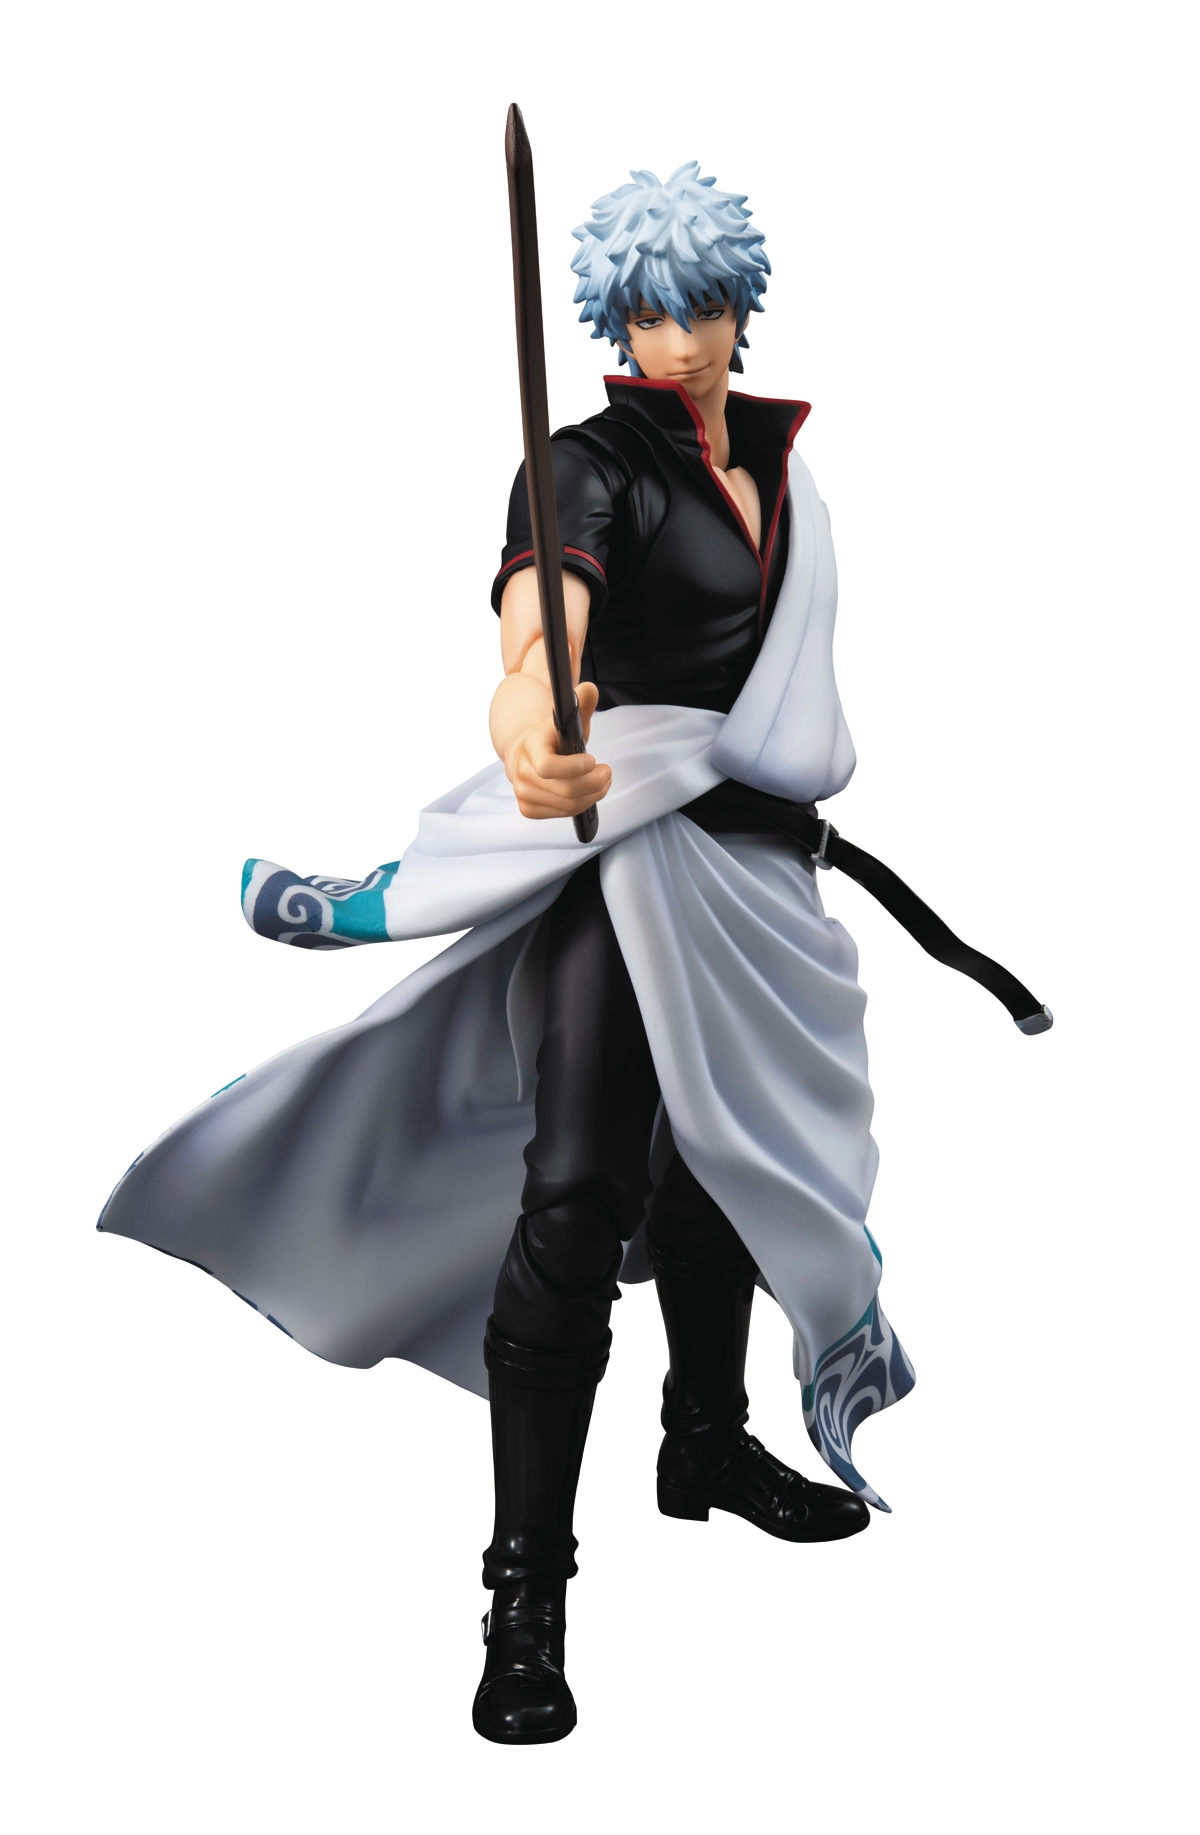 Gintama: Gintoki Sakata (Variable Action Hero PVC Figure)